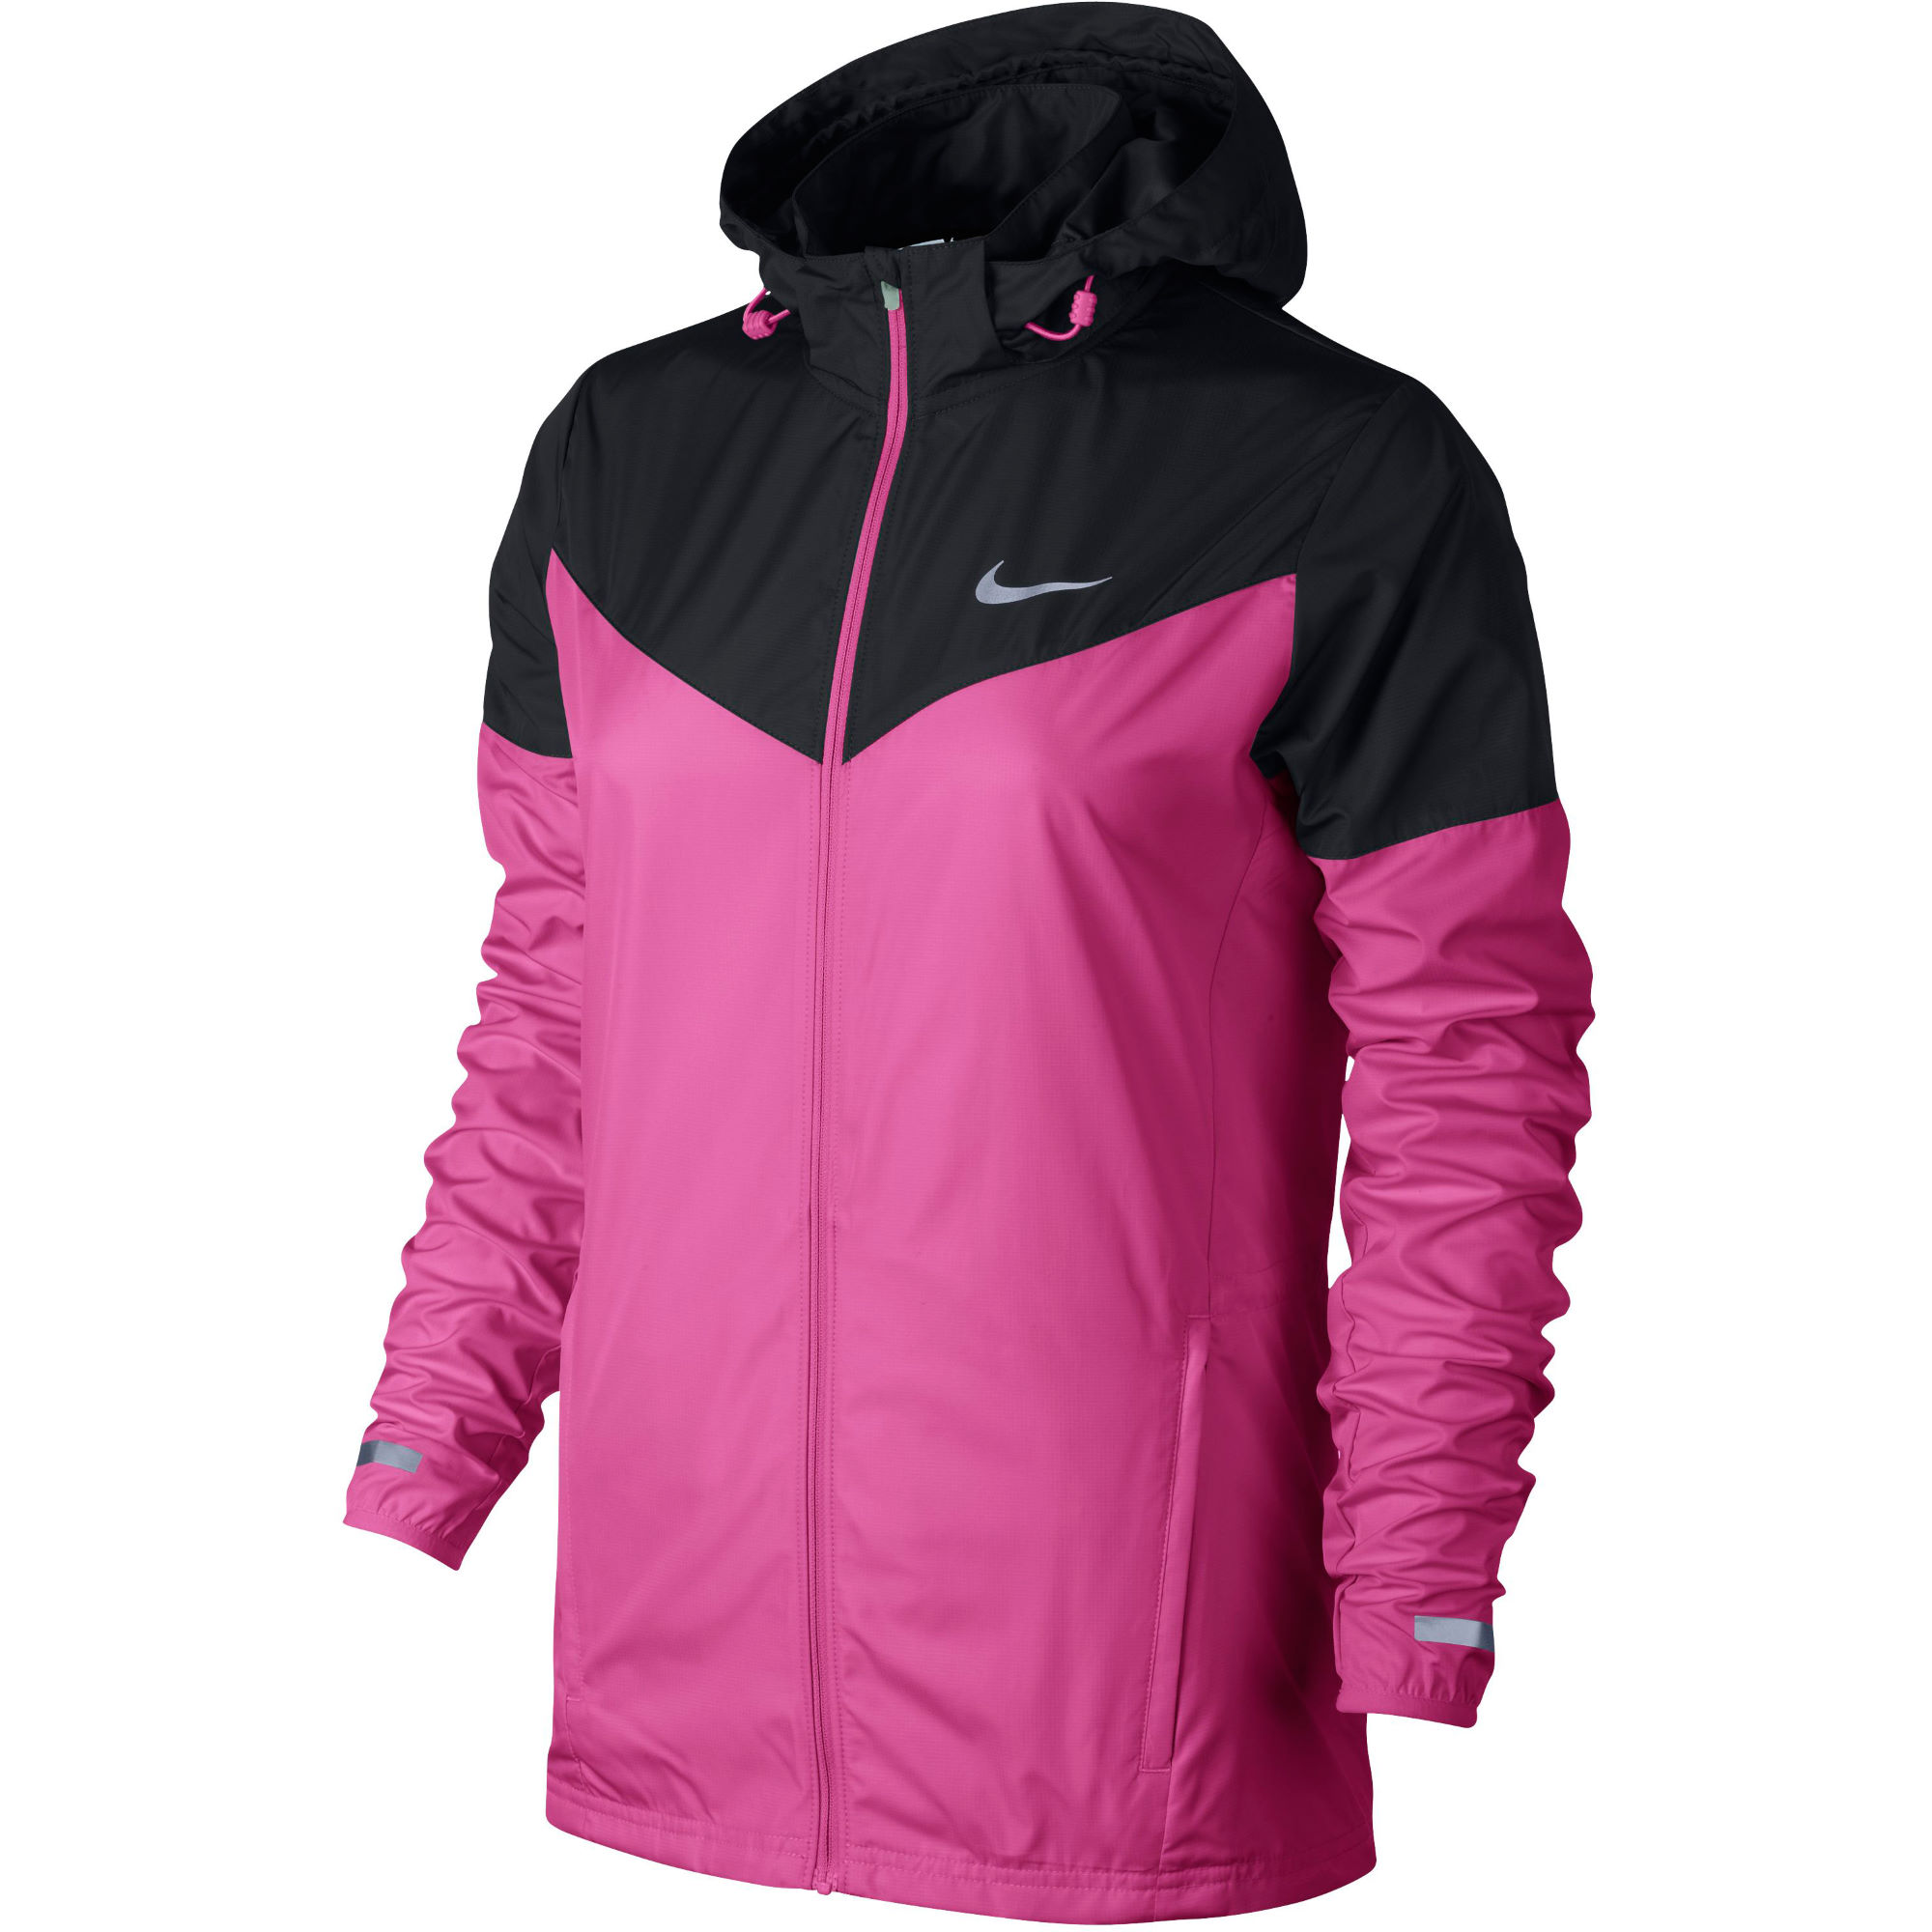 vestes de running coupe vent nike women 39 s vapor jacket sp15 wiggle france. Black Bedroom Furniture Sets. Home Design Ideas